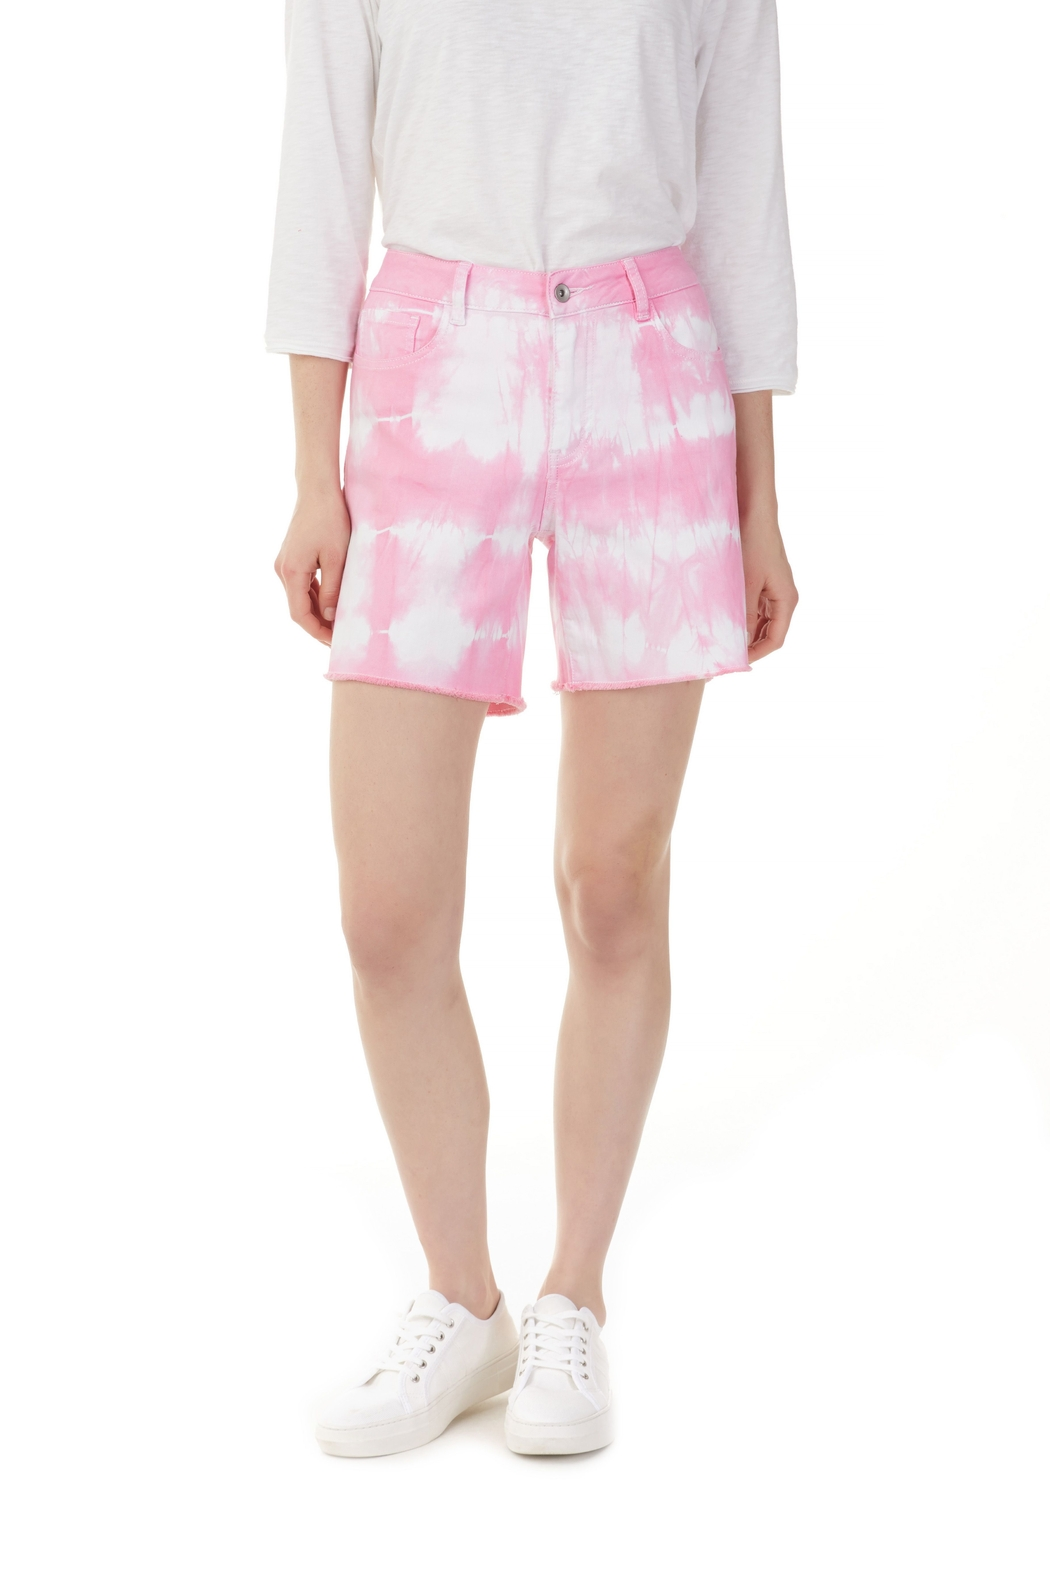 Charlie B. Flamingo Tie Dye Jean Shorts - Front Cropped Image